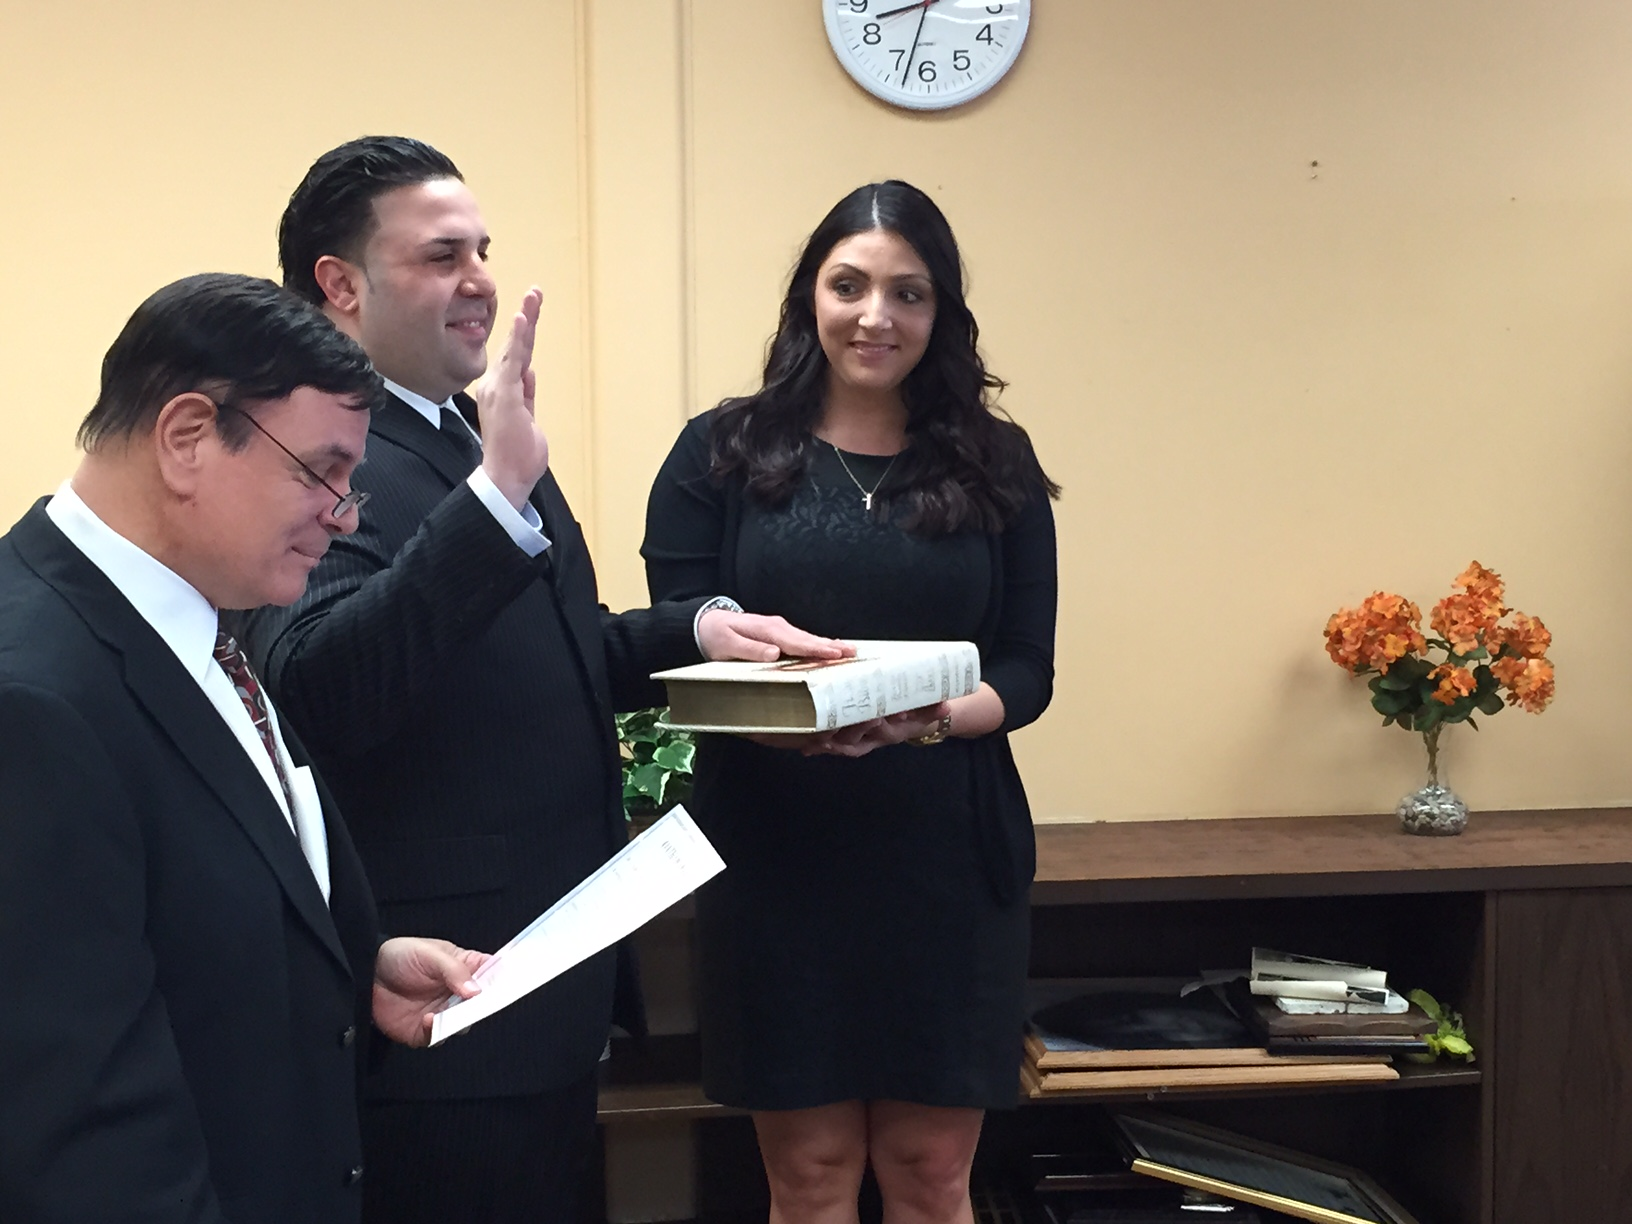 Mayor Masoupst swears in Officer Nobile